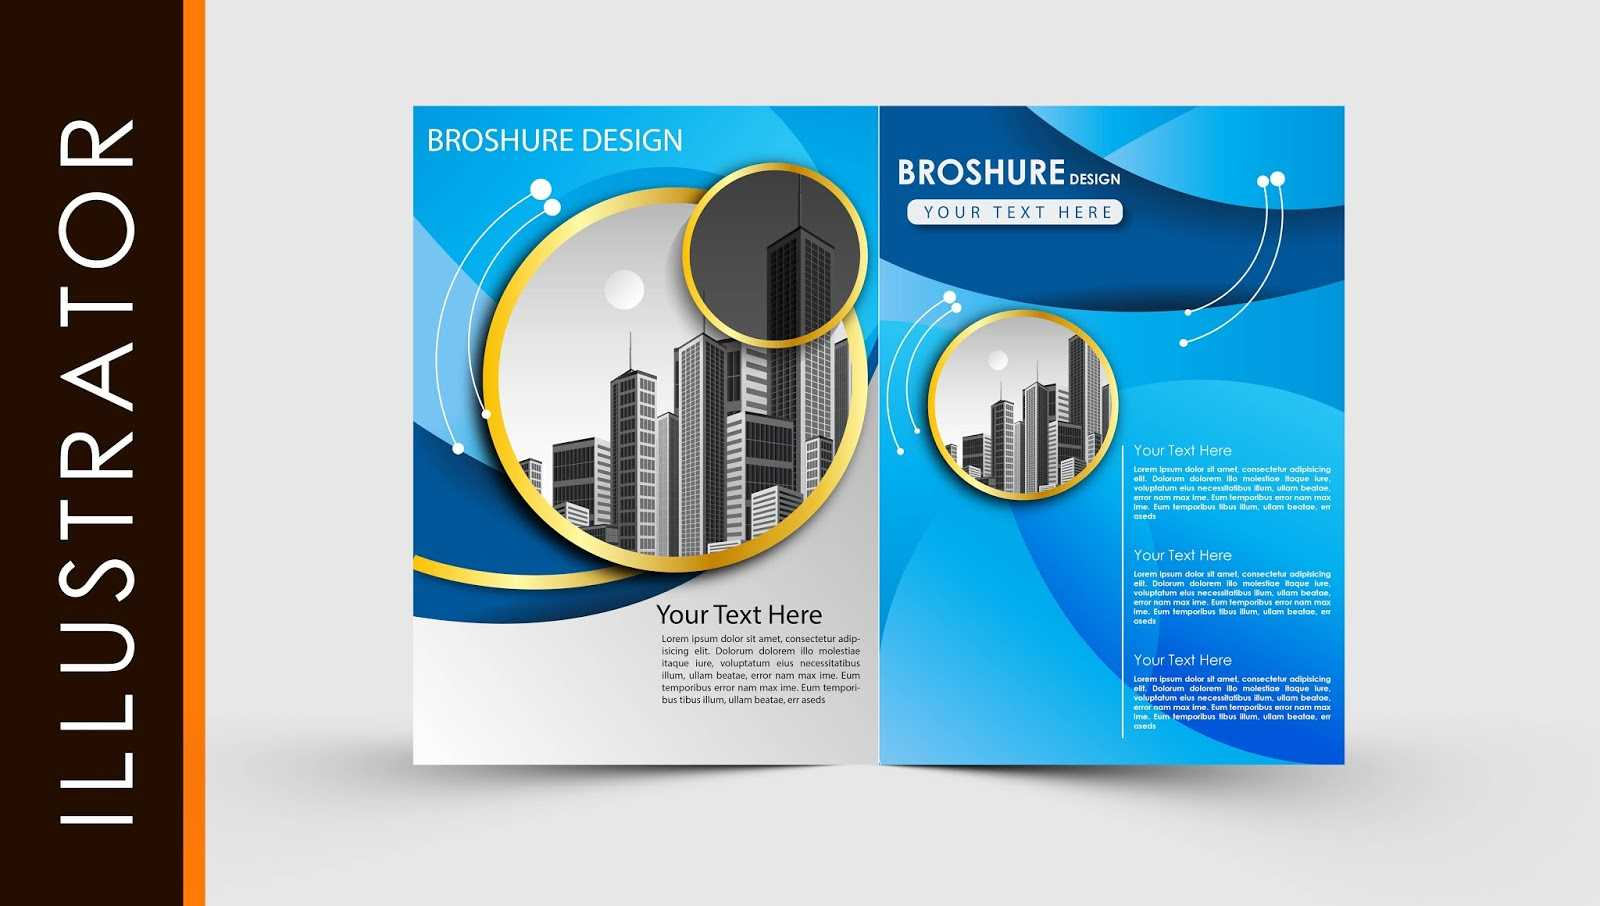 Free Download Adobe Illustrator Template Brochure Two Fold Intended For Free Illustrator Brochure Templates Download